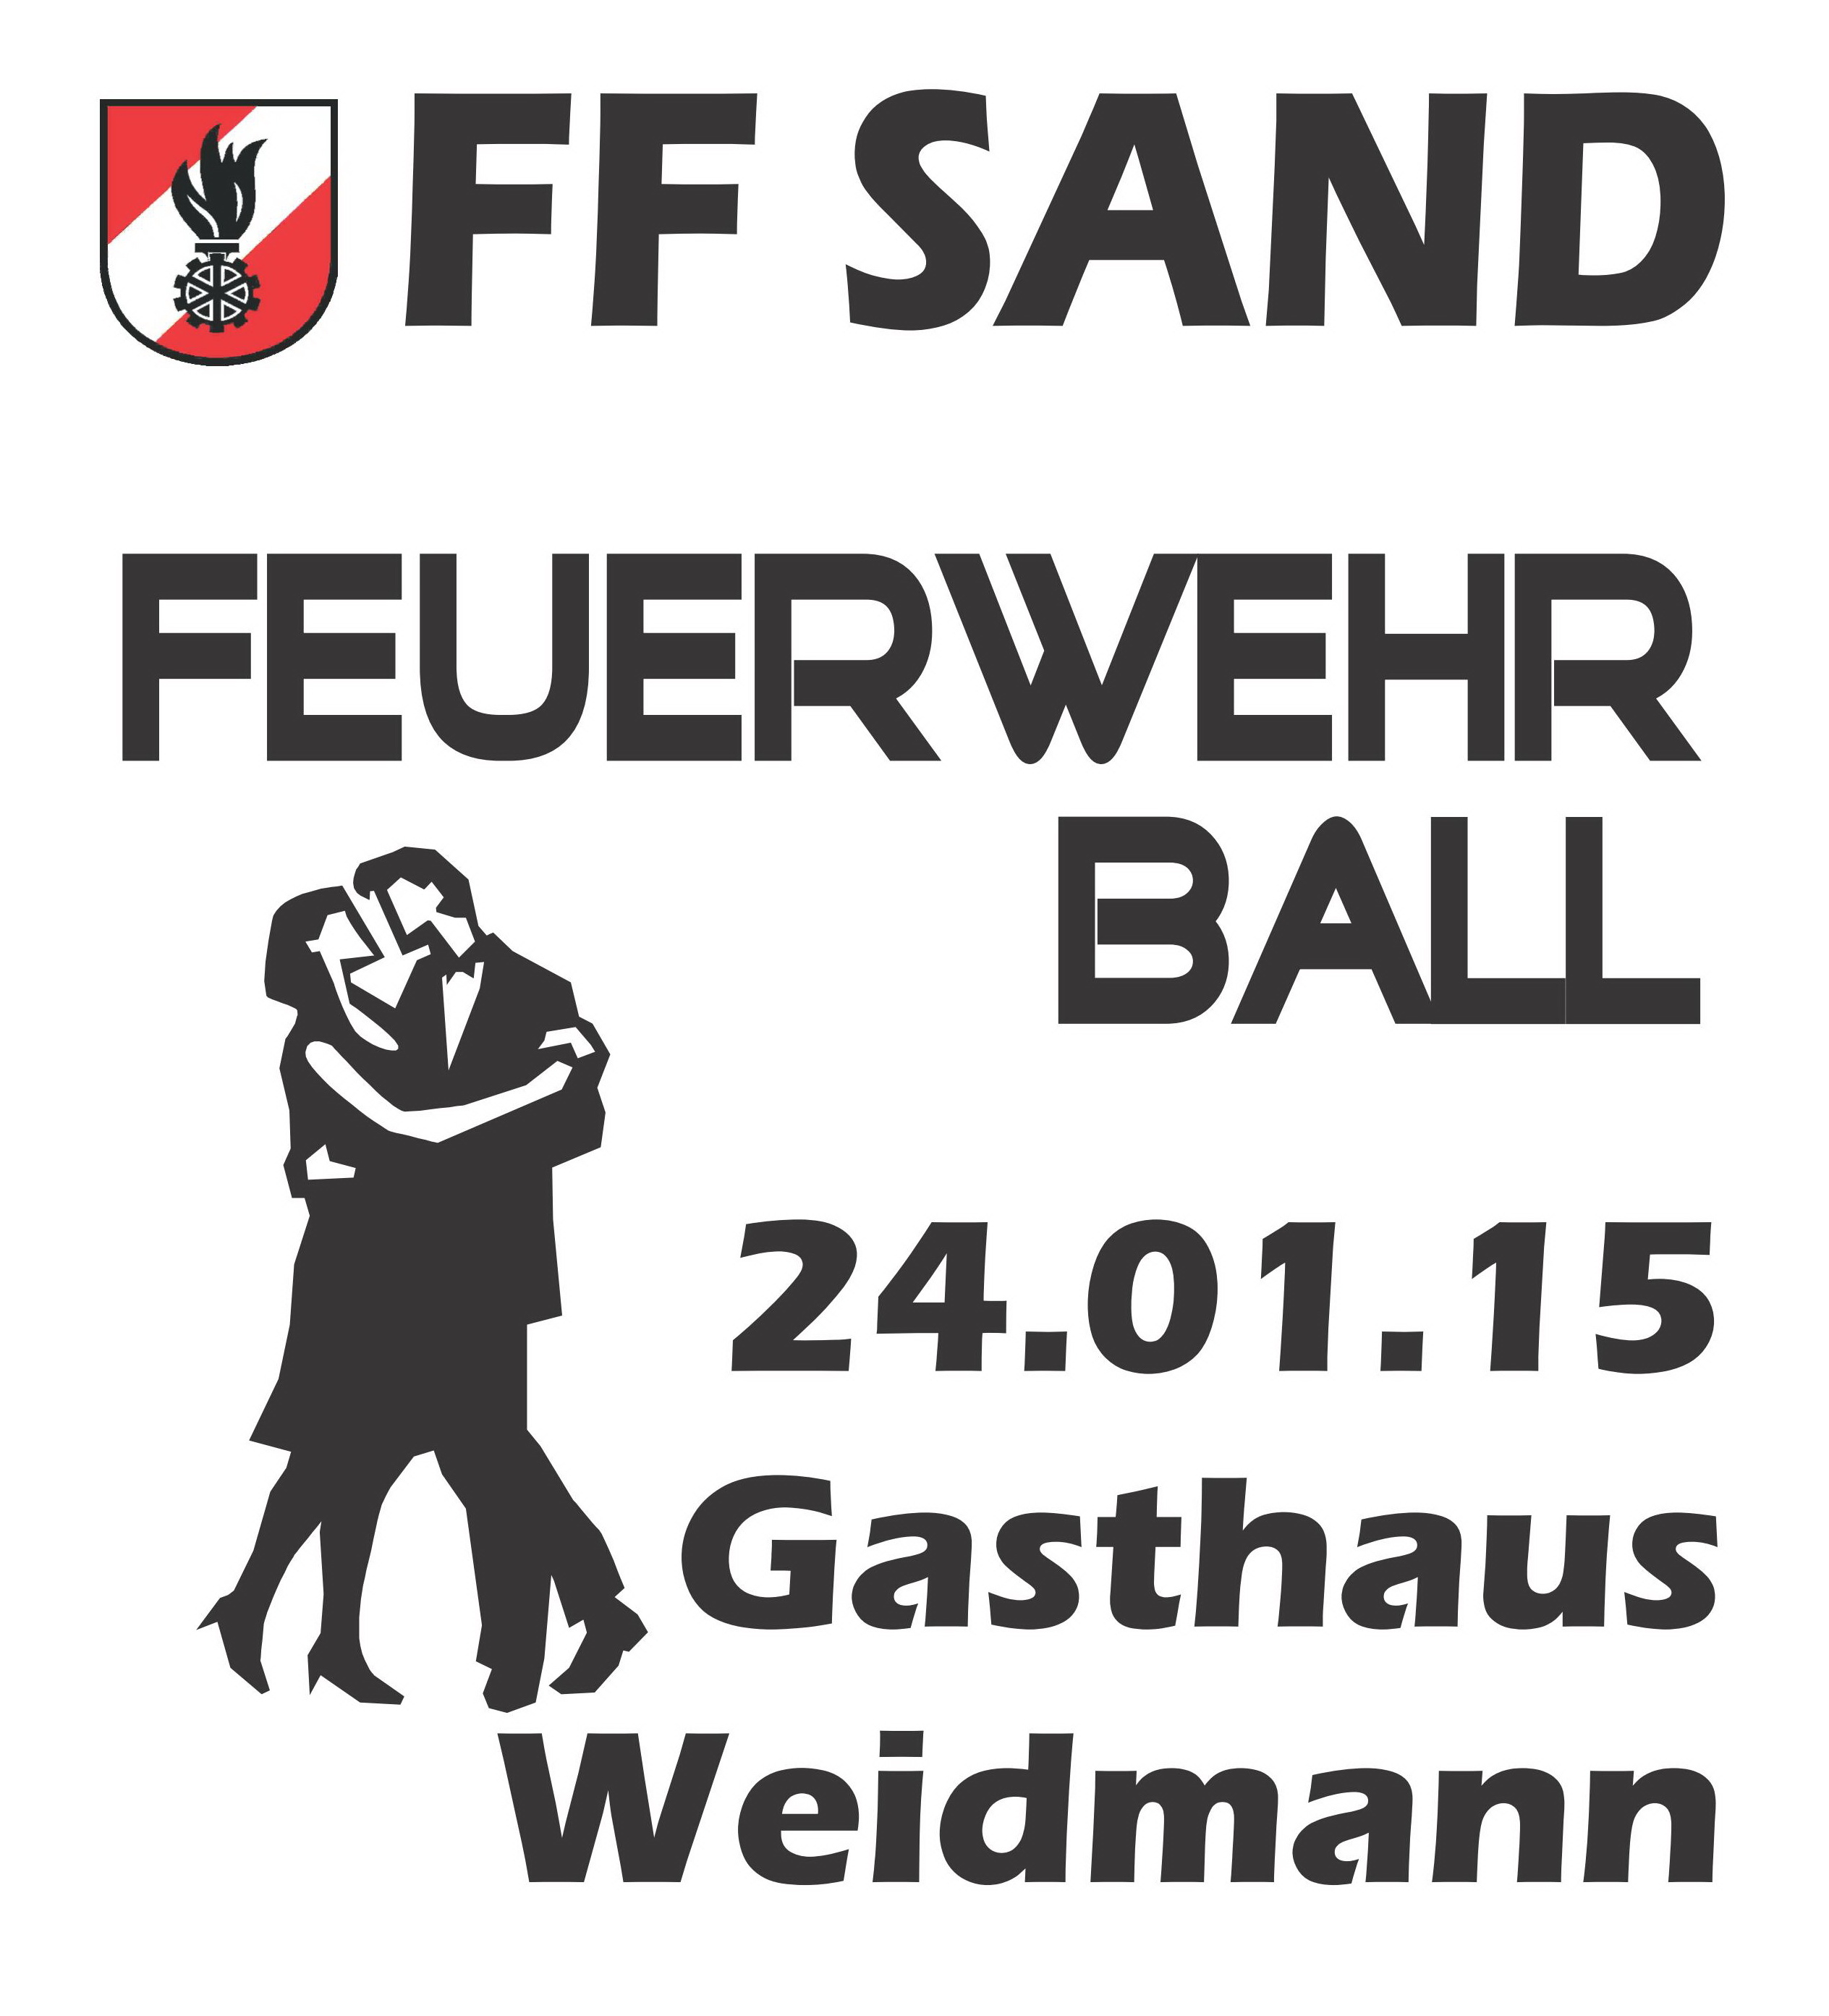 FFBall2015 plakat. web